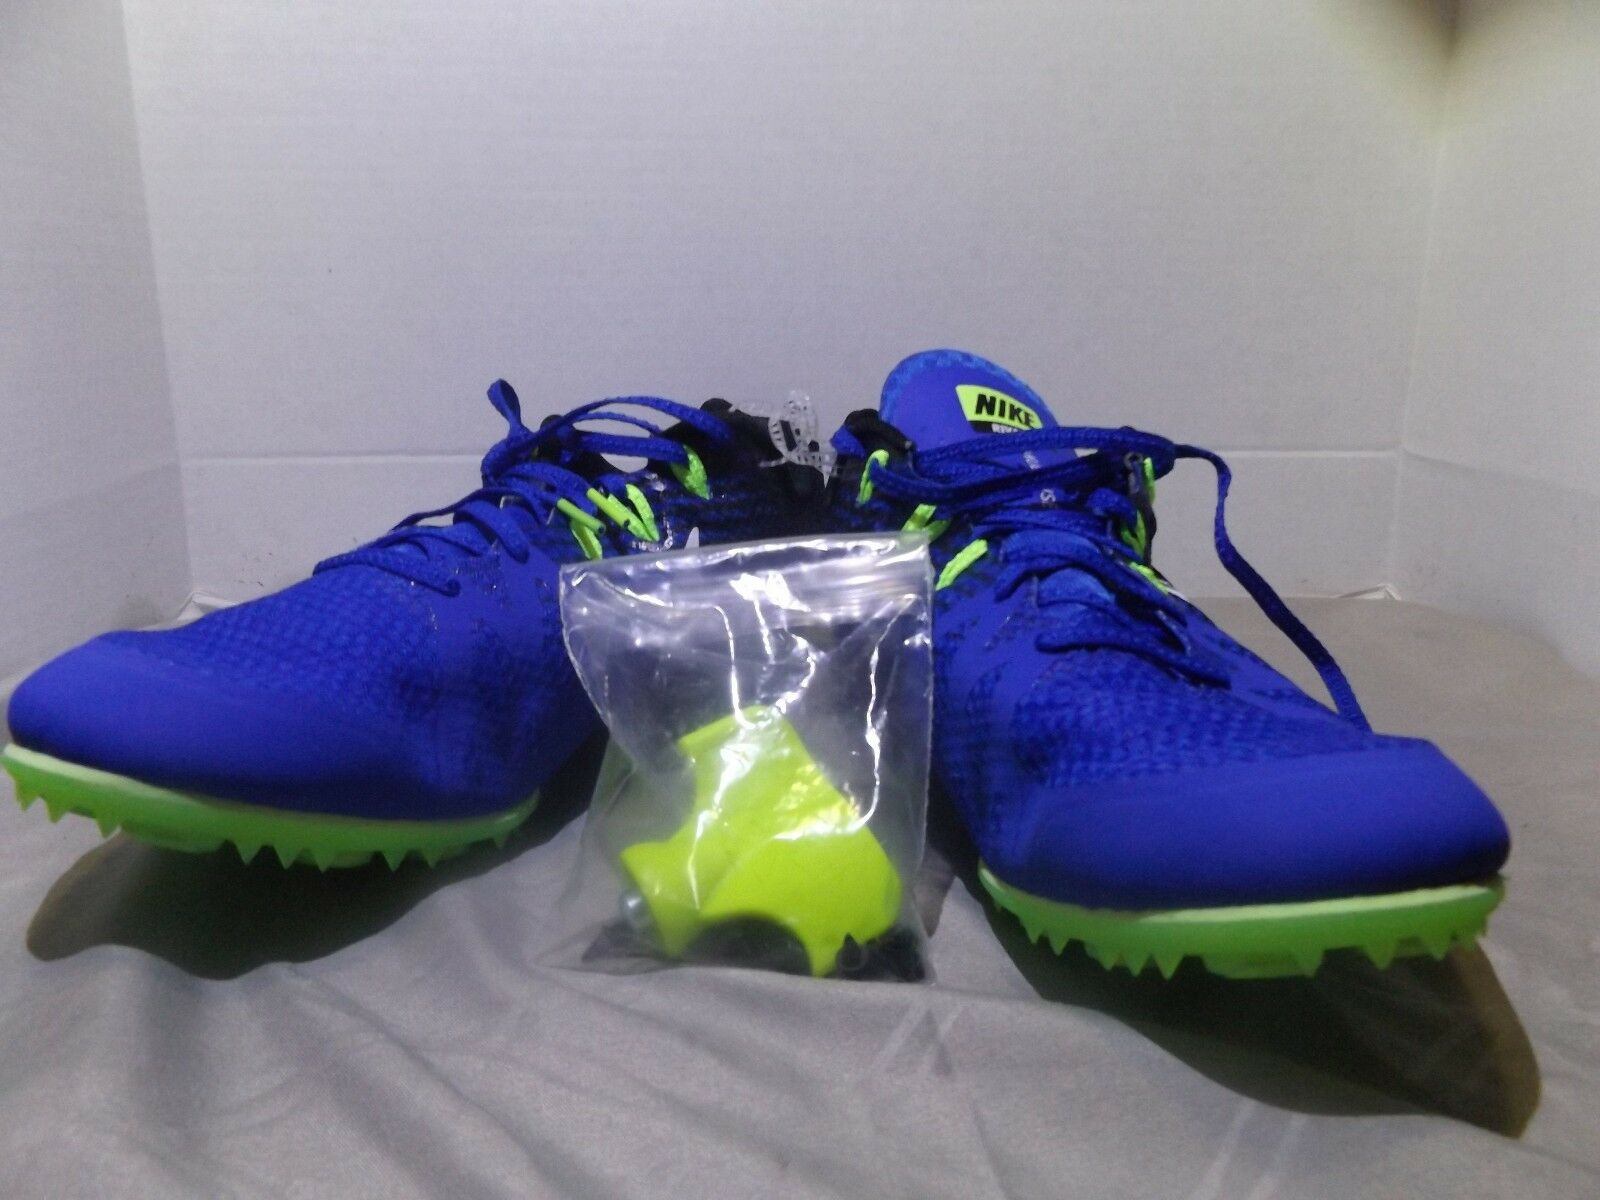 Nike Zoom Rival M  Men's Track Field Sprint Spikes Shoes 806555 413 Comfortable